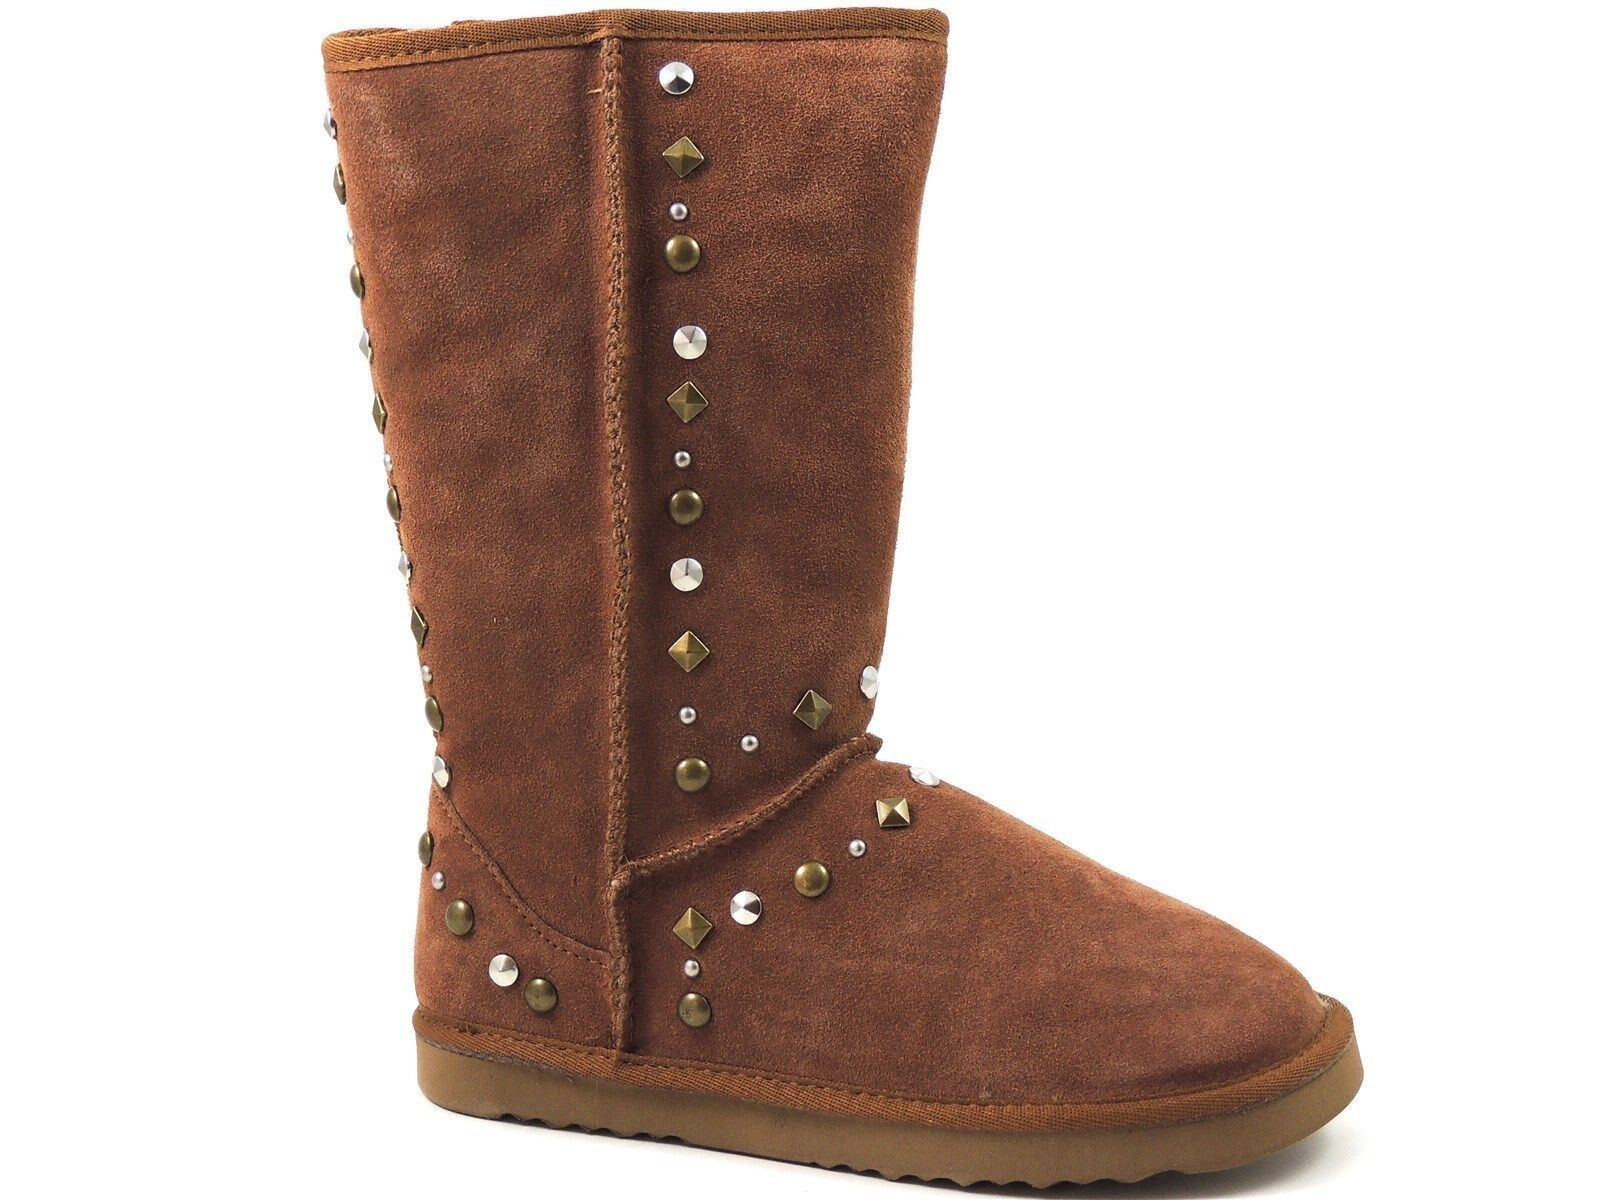 Style&co. Women's Bolted Snow, Winter Boots Tan Chestnut Leather Size 9 M